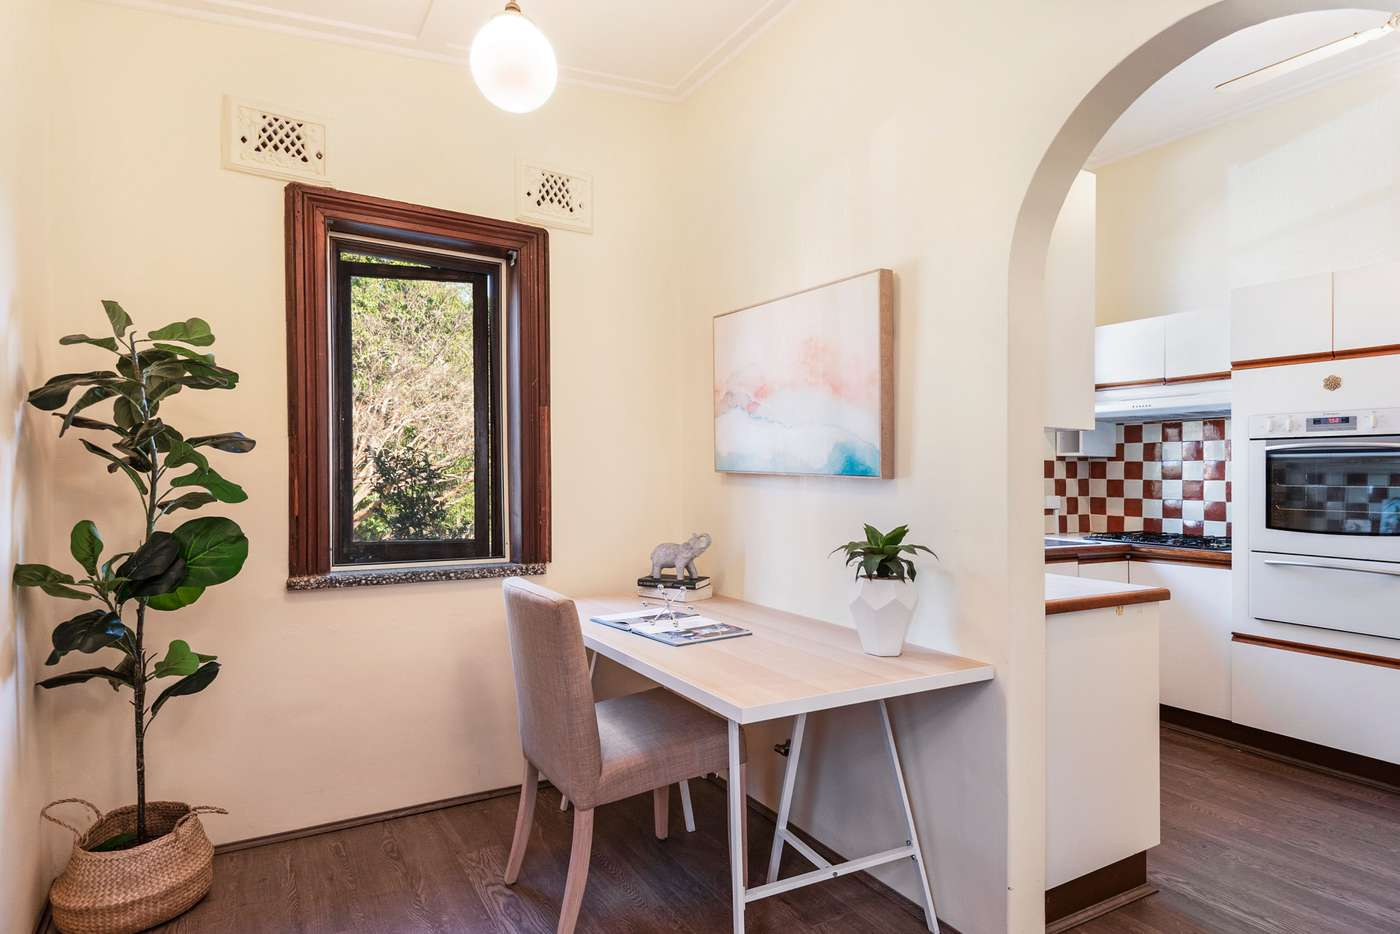 Fifth view of Homely apartment listing, 10/9 Davidson Parade, Cremorne NSW 2090